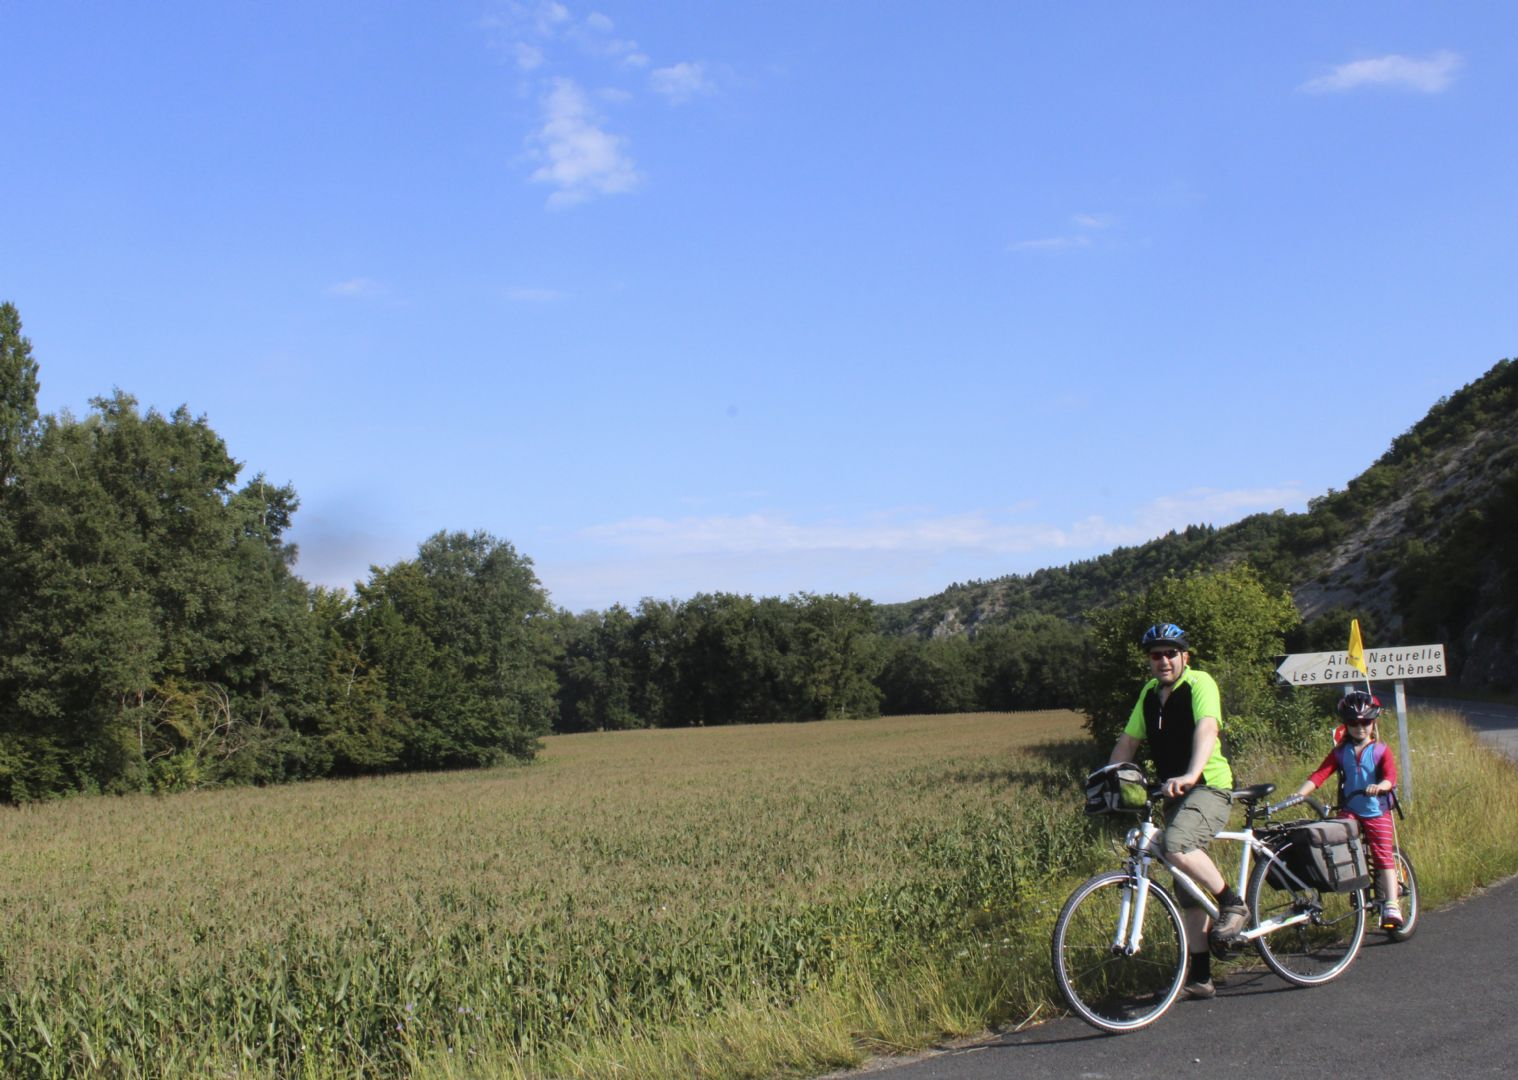 francefamilycycling.jpg - France - Dordogne Discoveries - Self-Guided Family Cycling Holiday - Family Cycling